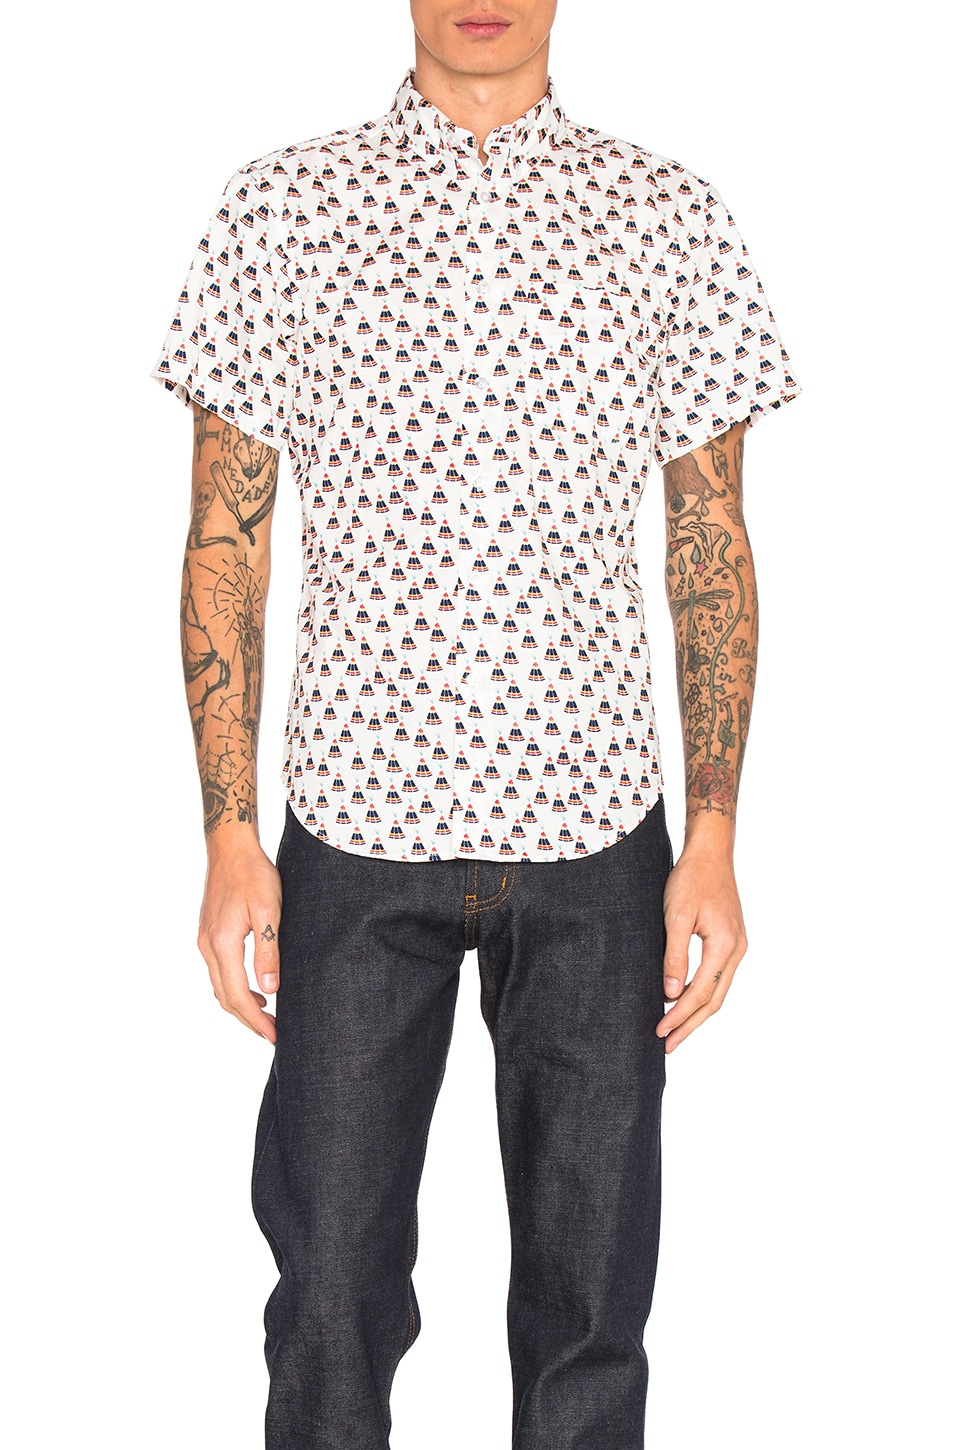 S/S Button Down by Naked & Famous Denim